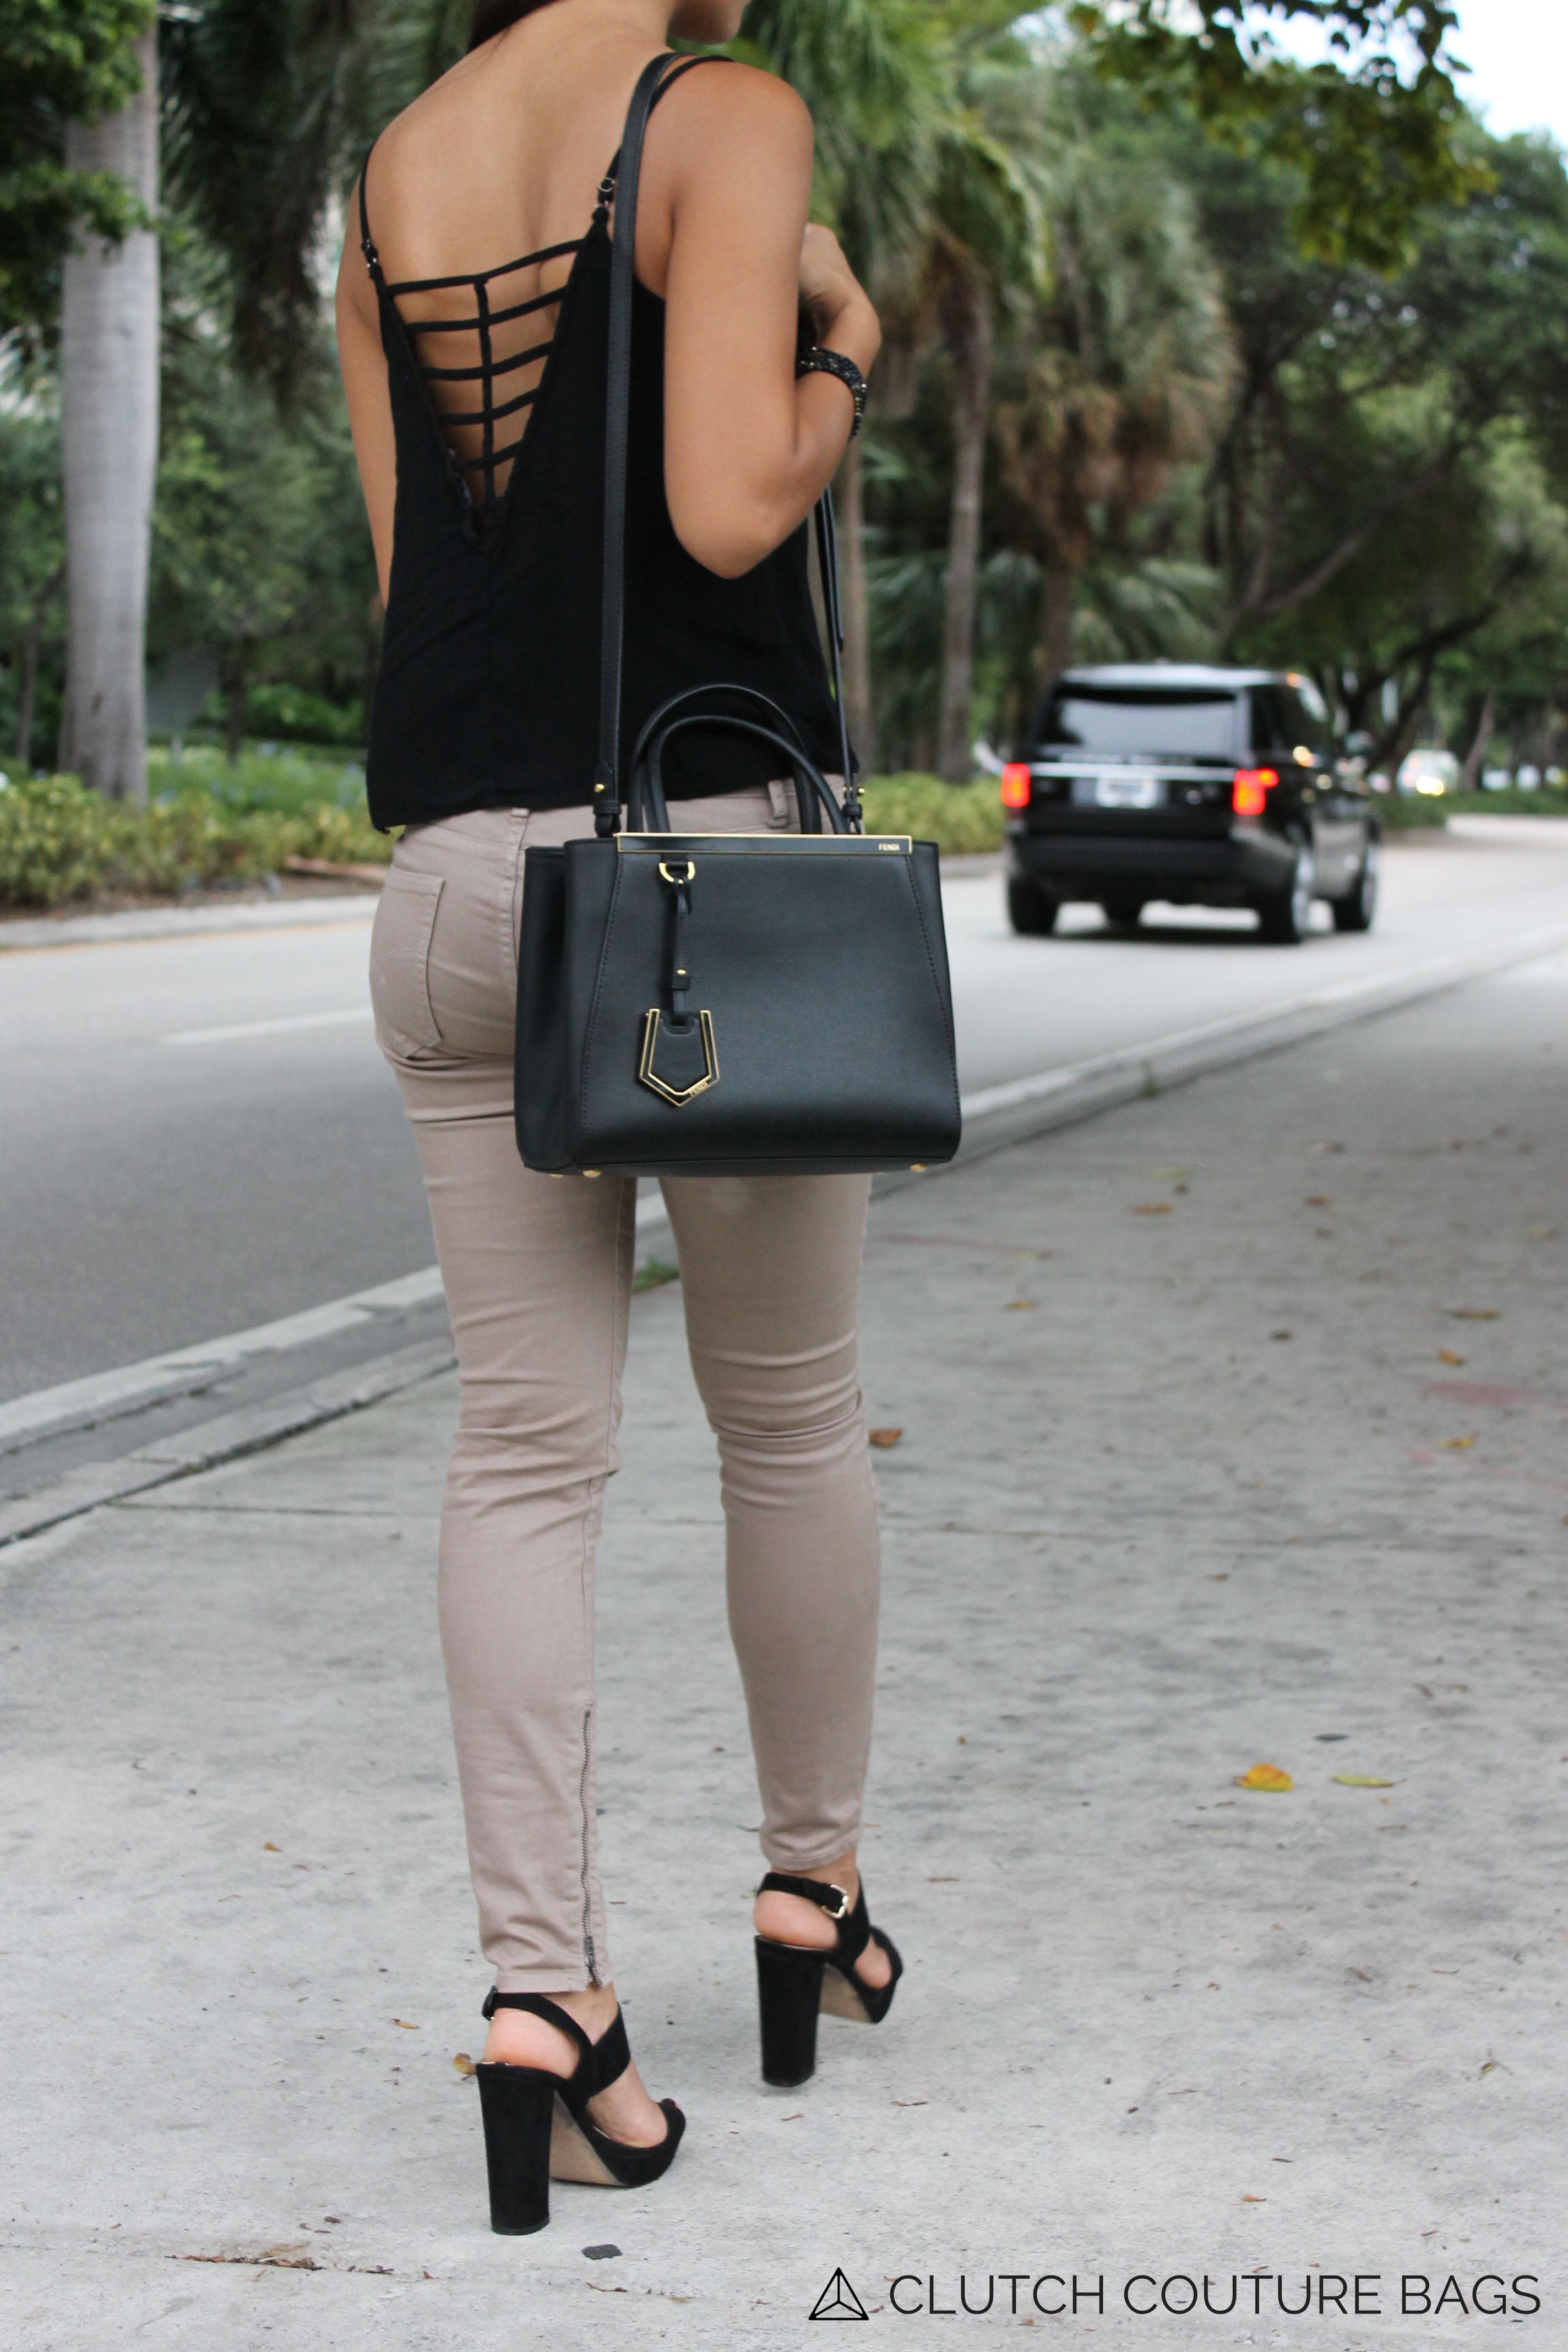 b578b7e26ef4 Fendi 2 Jours street style. The Fendi 2Jours bag is available to rent from Clutch  Couture Bag with both weekly and monthly rentals.